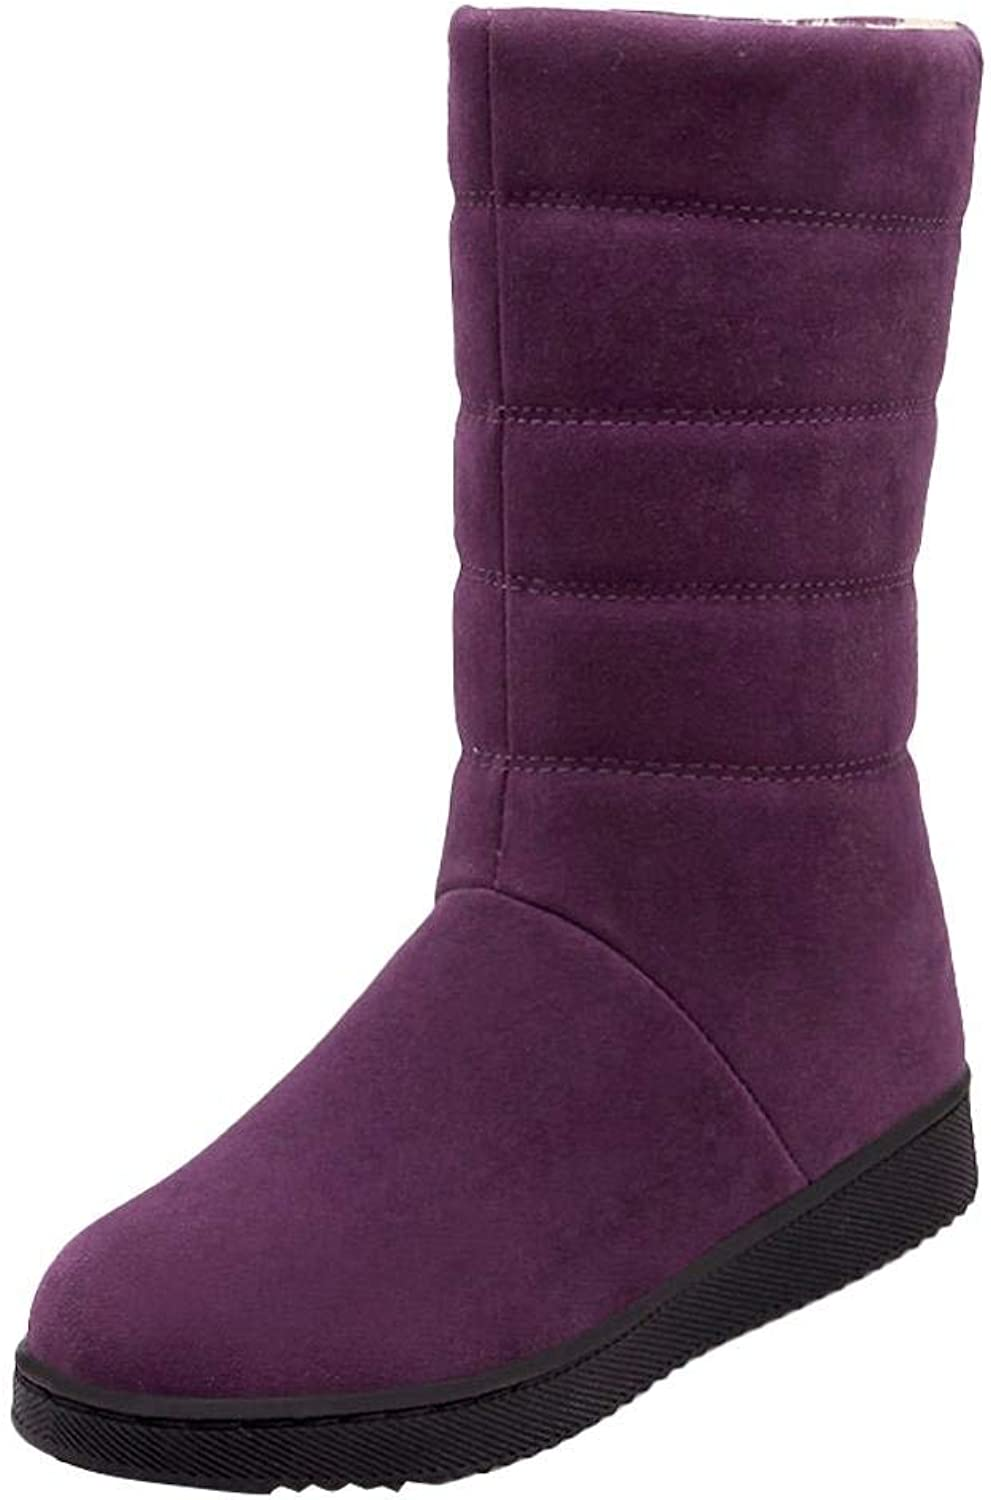 Ghssheh Women's Warm Winter Velvet Lining Flat Mid Calf Snow Boots Wine Red 4.5 M US